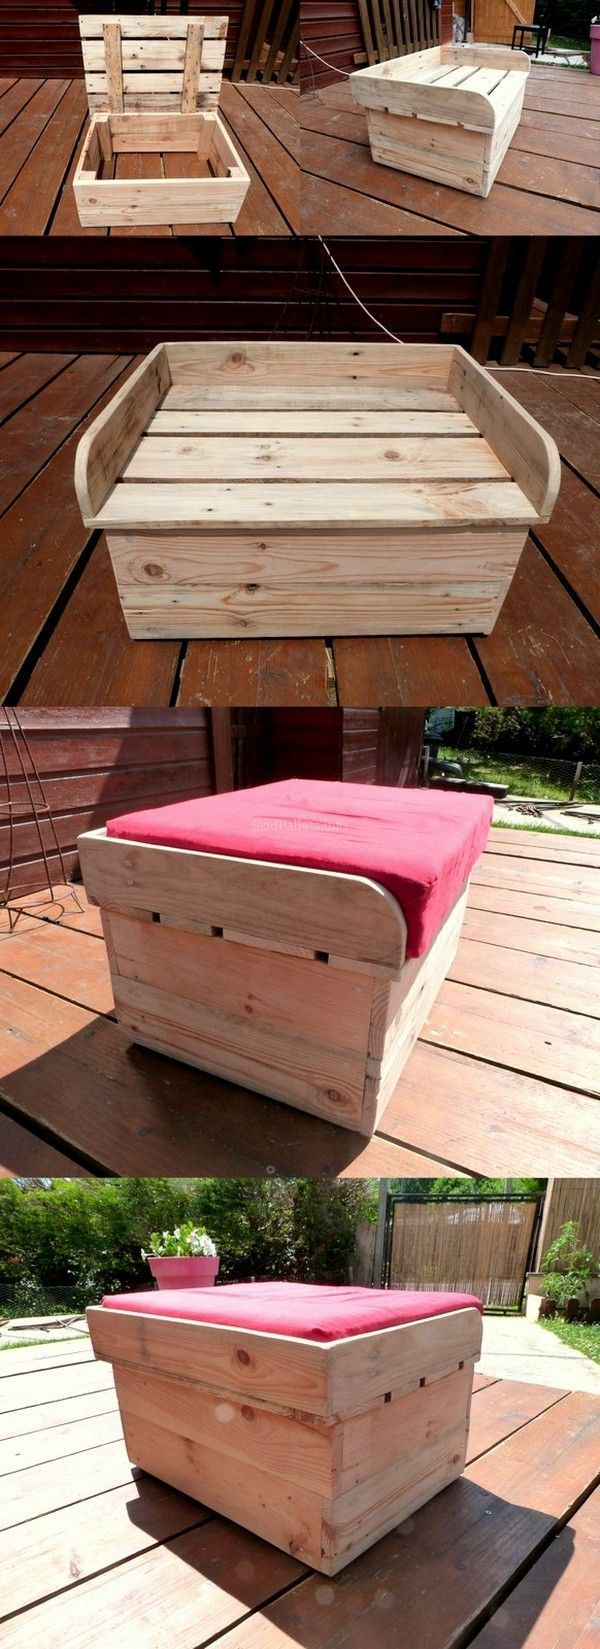 Skid Pallet Wood Reshape Projects Projects In 2018 Pallet